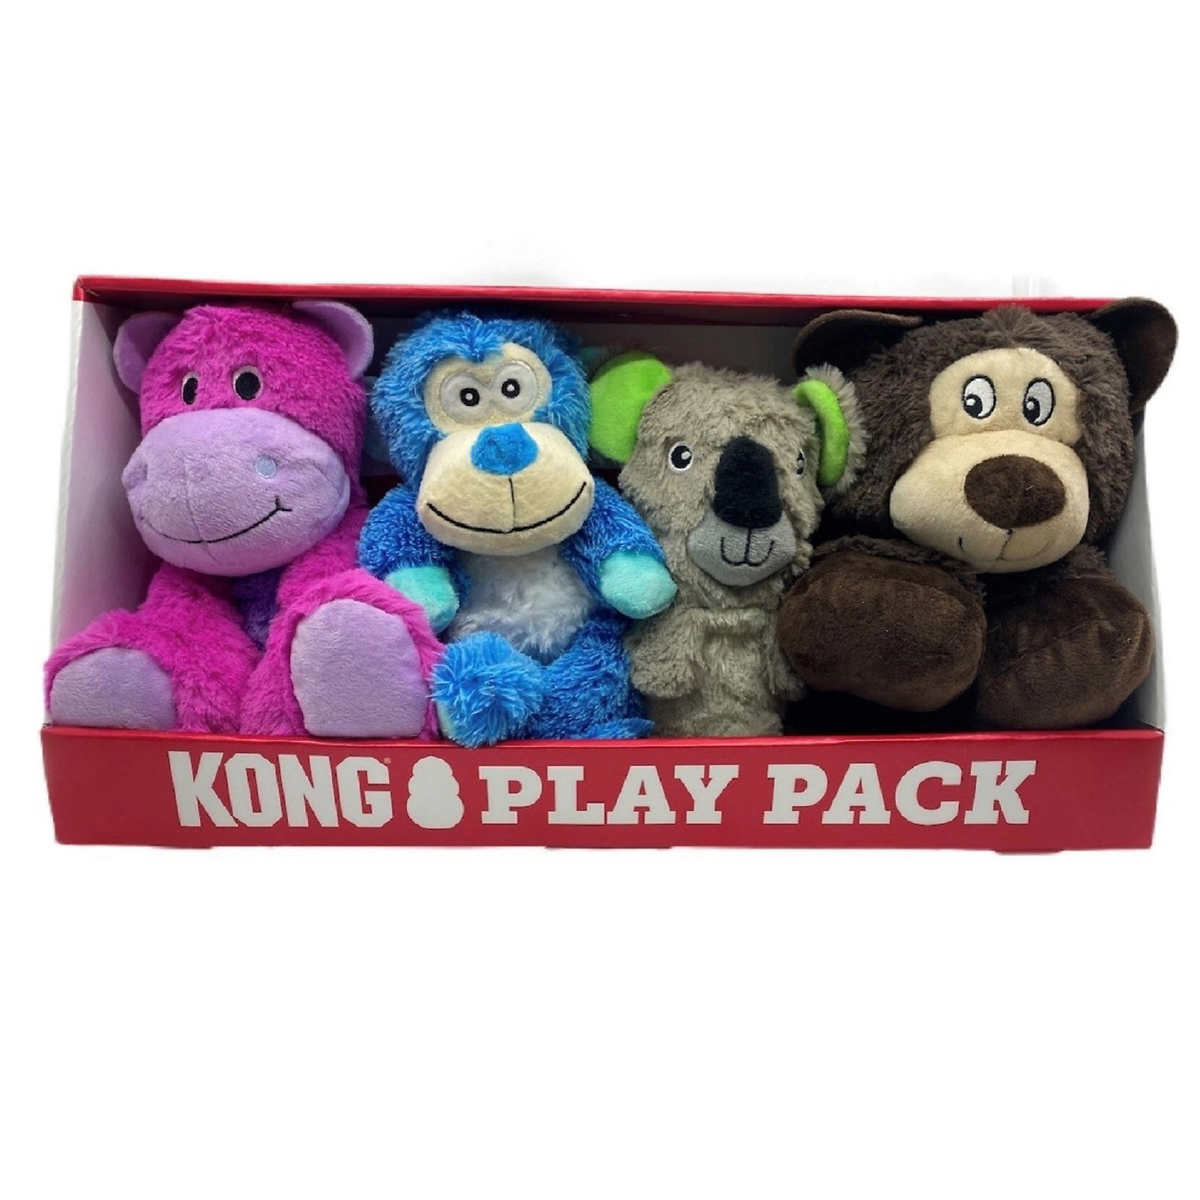 Kong Pet Toy Variety 4 Pack